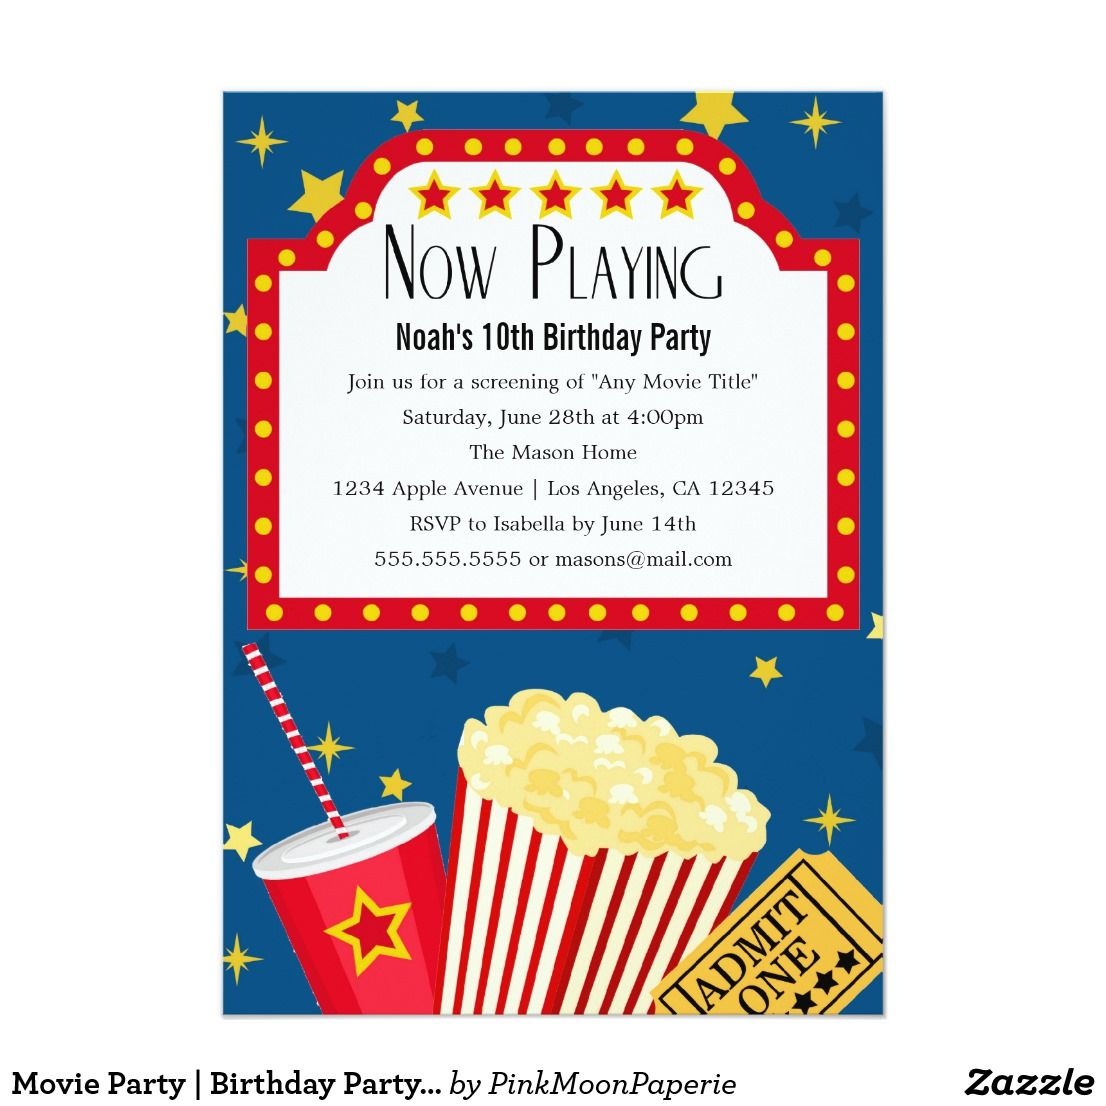 Movie Party | Birthday Party Invitation | Take me to the drive-in ...